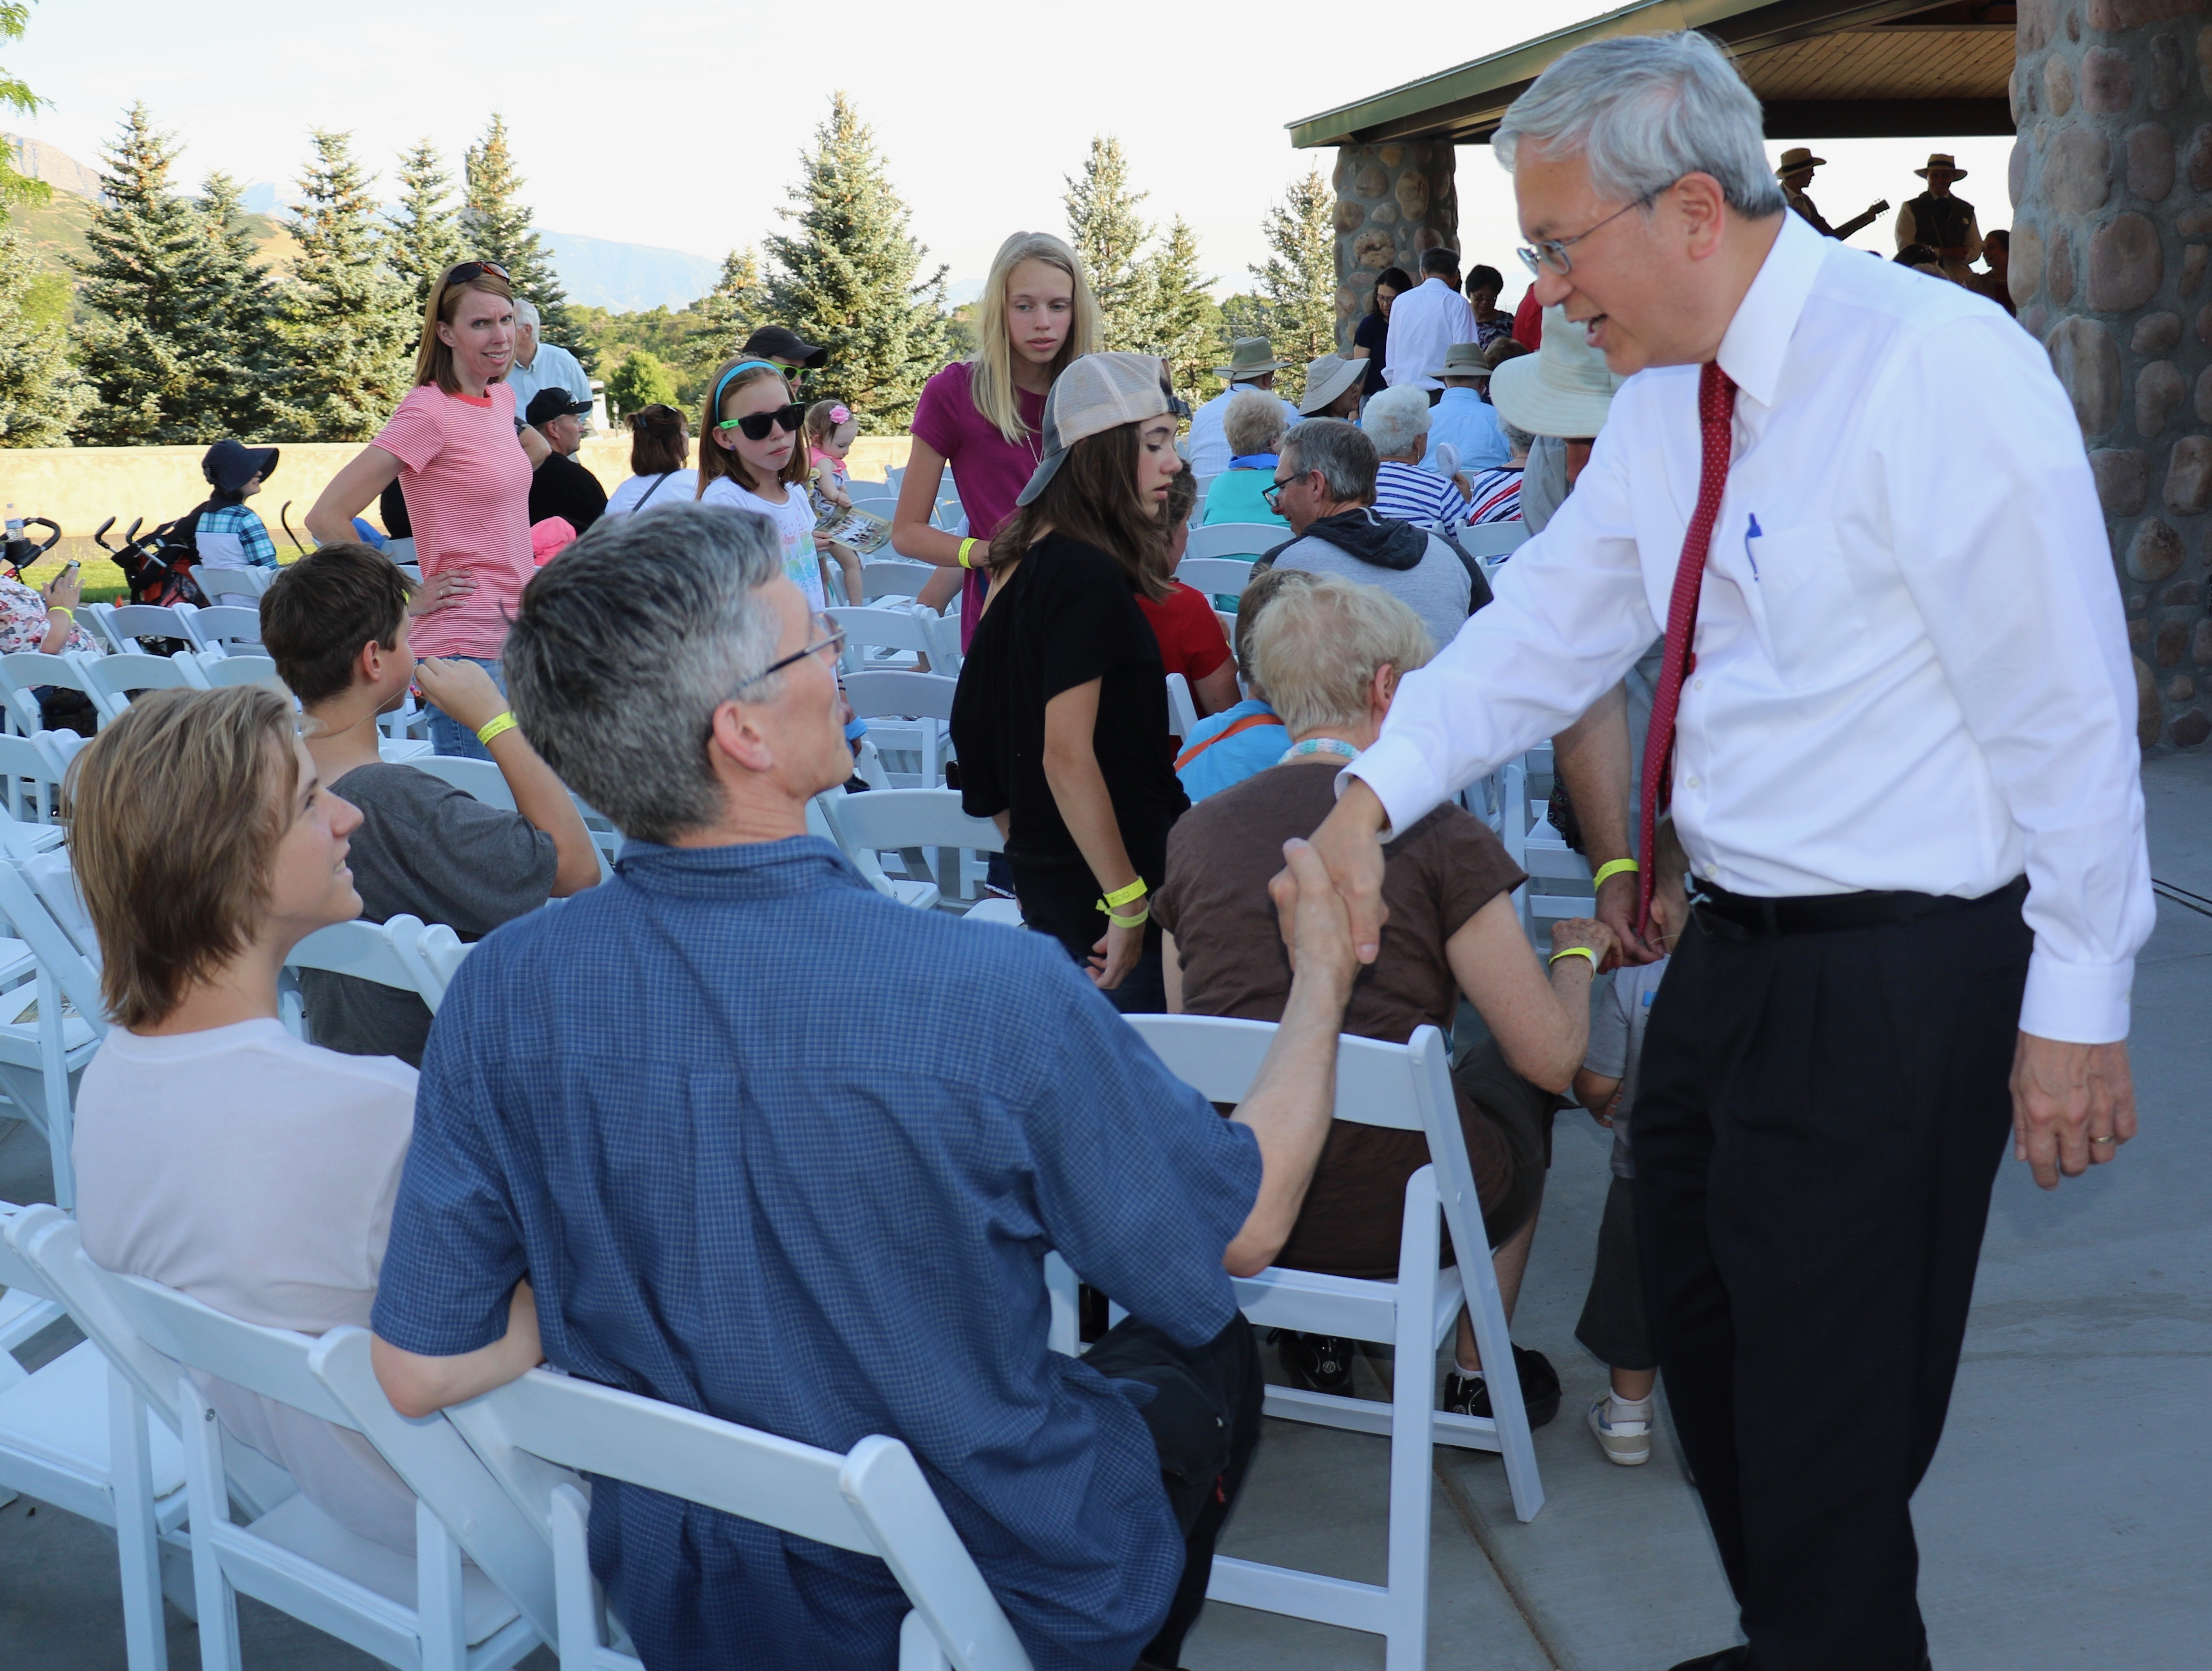 Elder Gerrit W. Gong of the Quorum of the Twelve Apostles greets guests prior to a pioneer-themed devotional at This Is the Place Heritage Park on July 16, 2018.